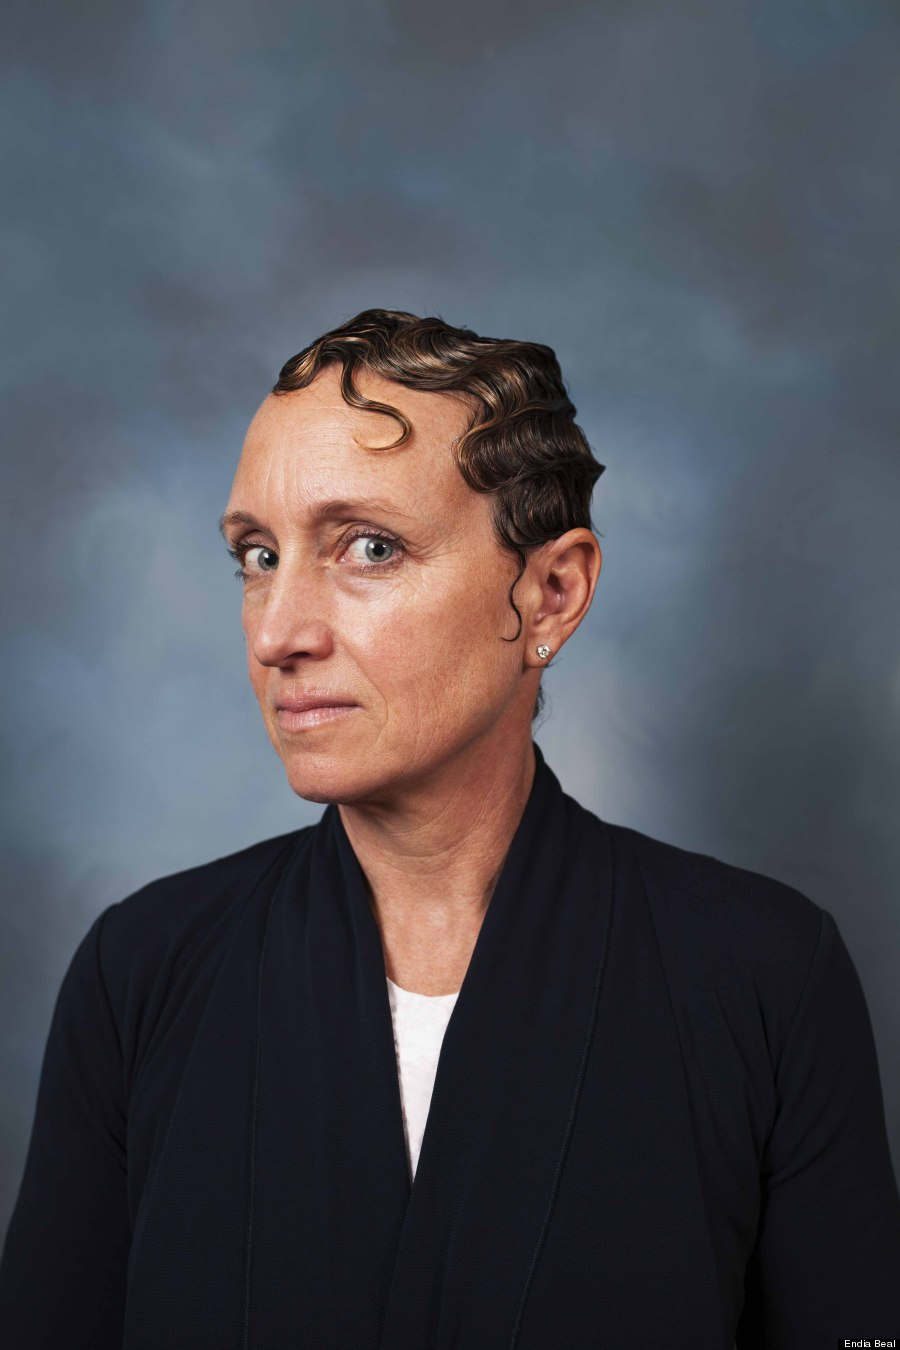 White Women With Black Hairstyles Redefine Corporate America